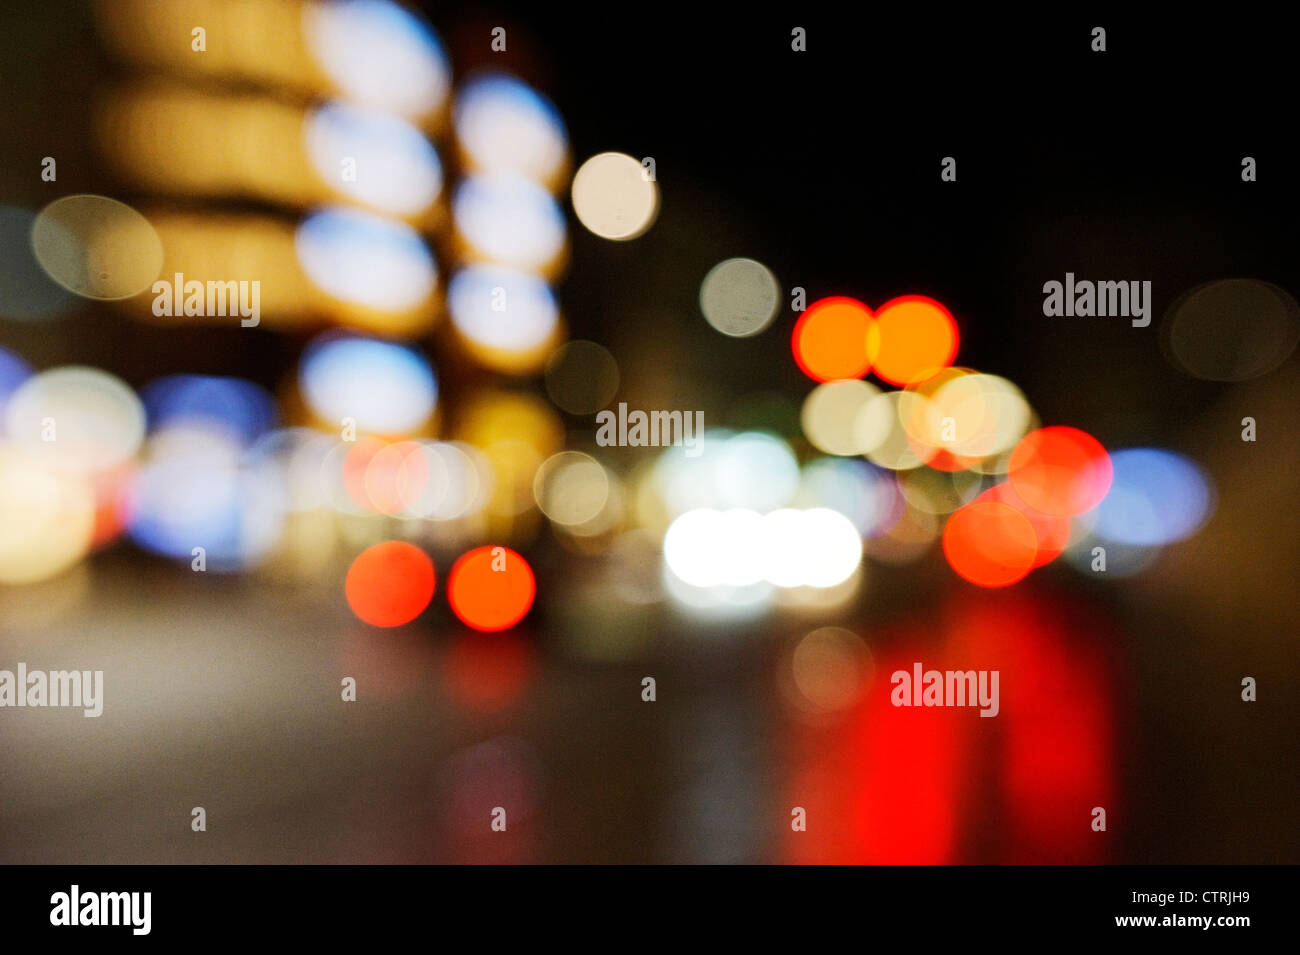 Lights, lamps, creative focus, rear lights, Jungfernstieg, Hamburg, Germany, Europe - Stock Image